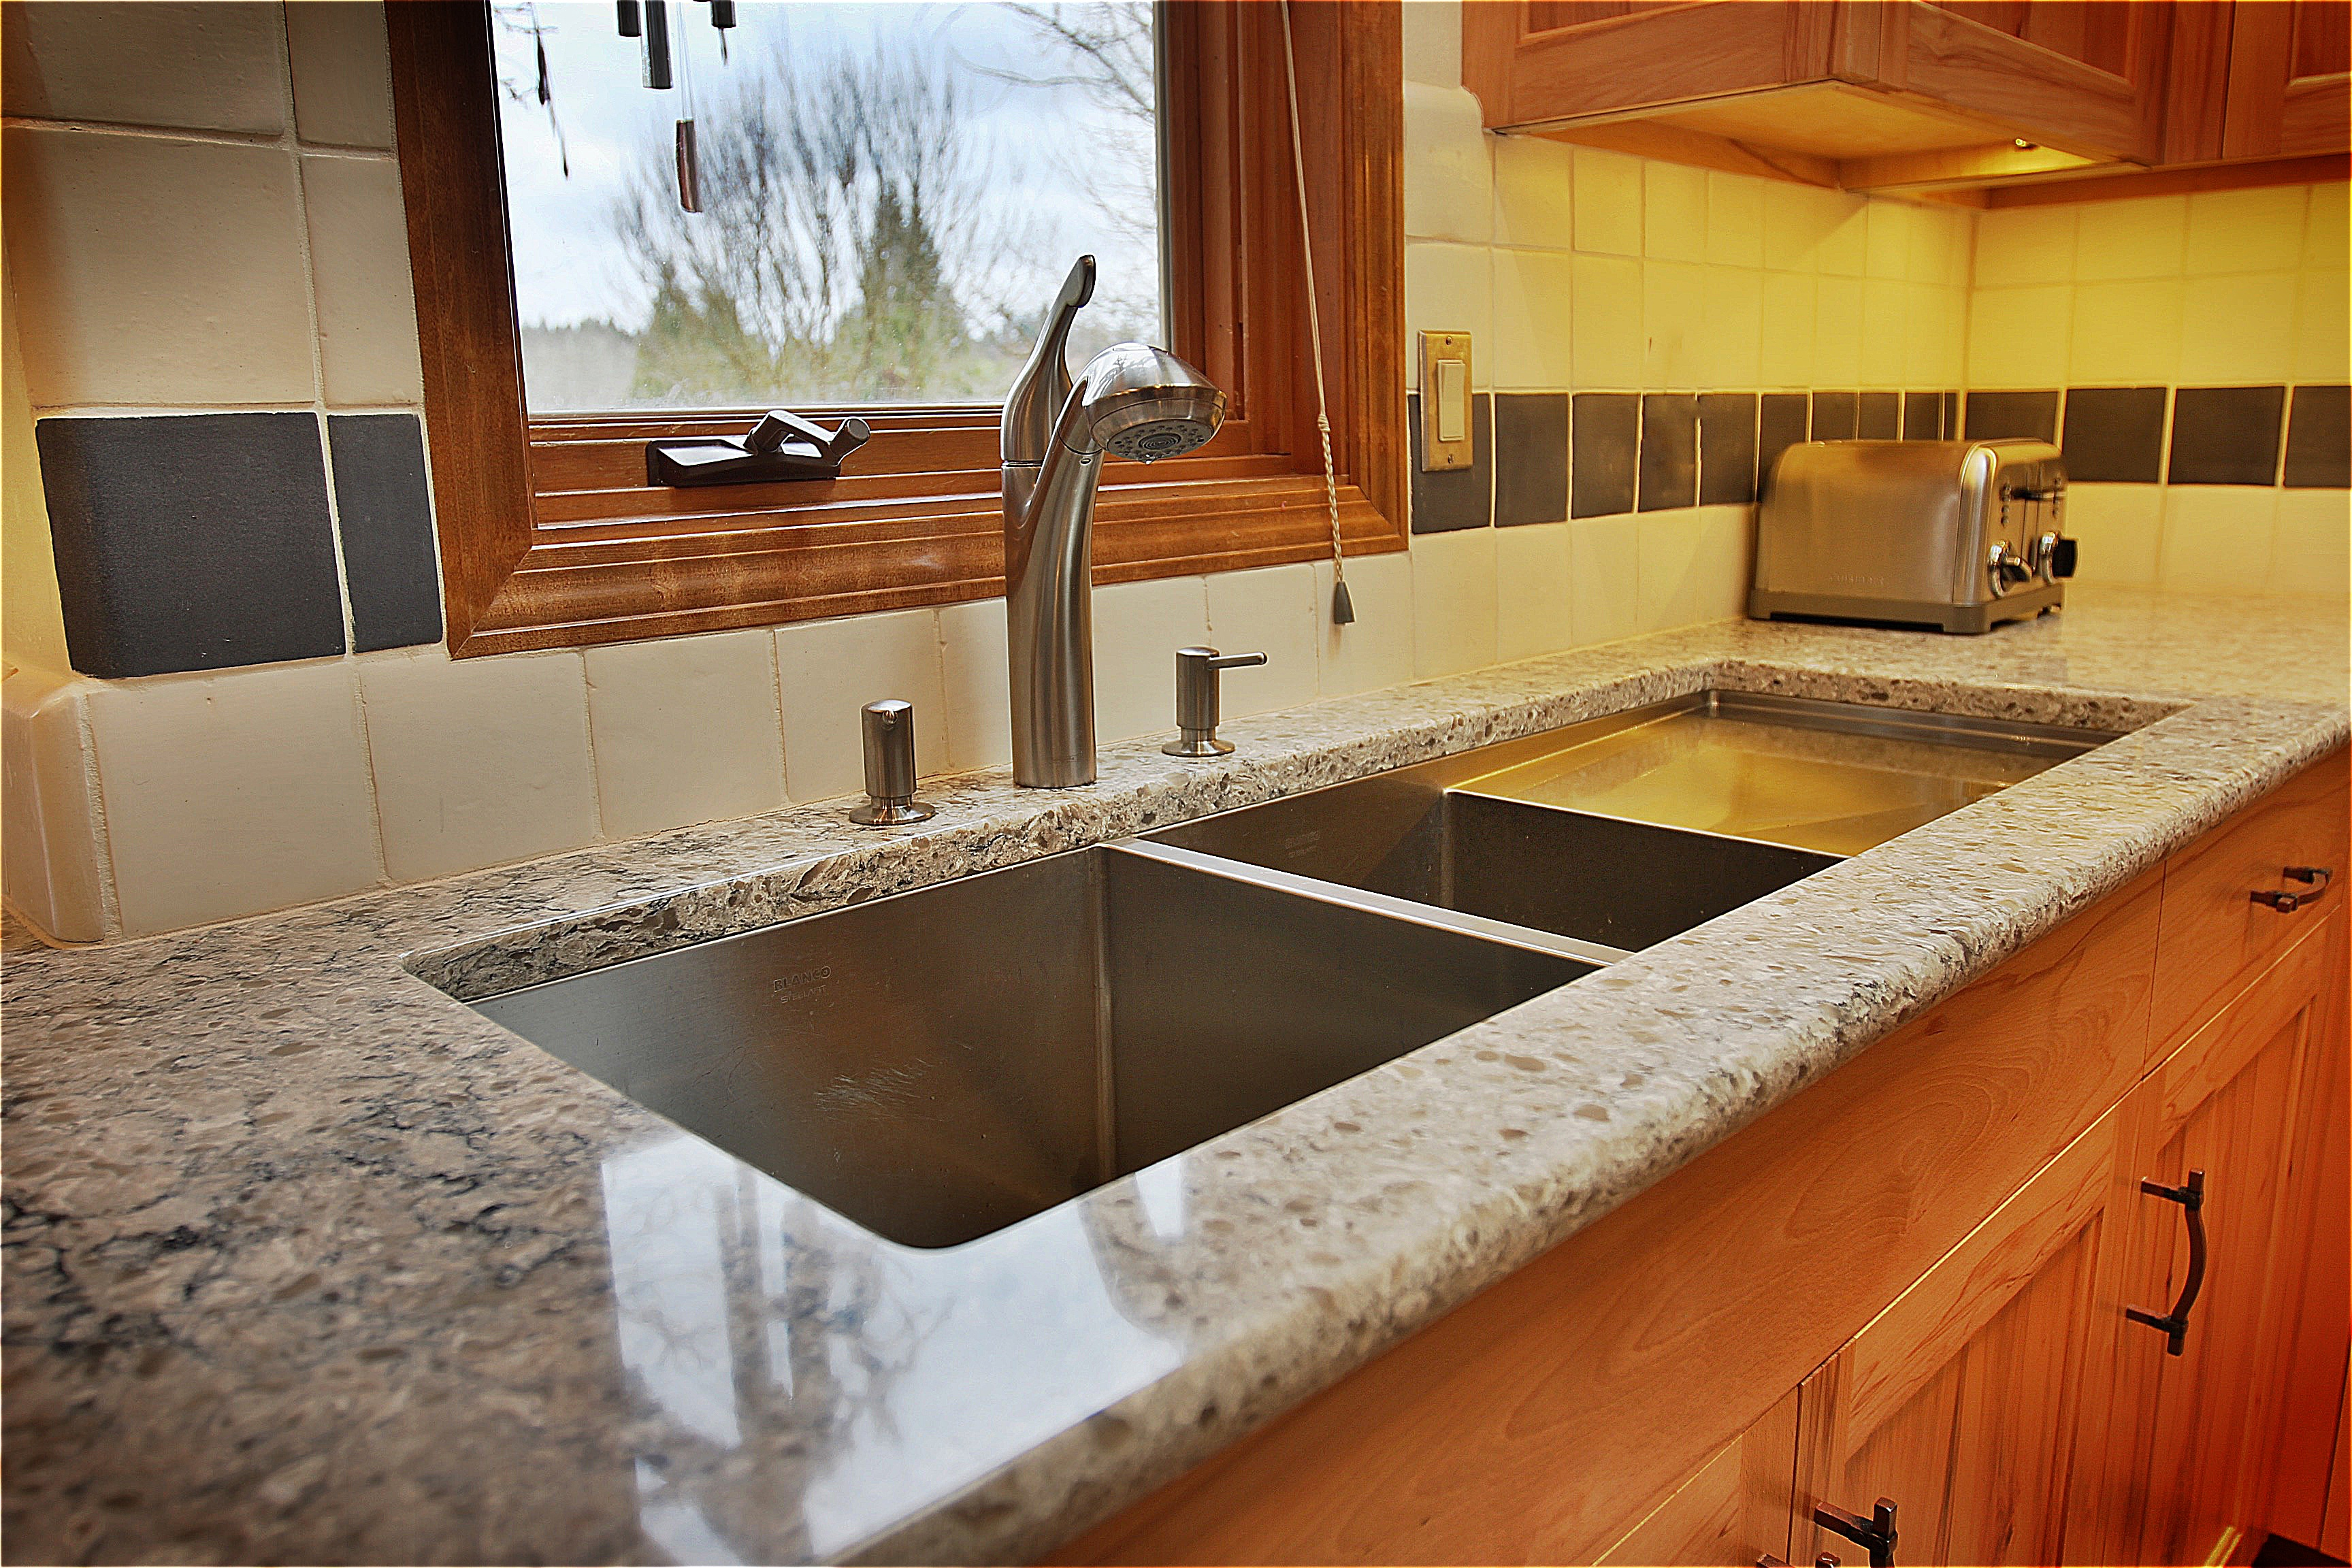 countertops com sasayuki info depot installation countertop cost kitchen granite installed home of solpool